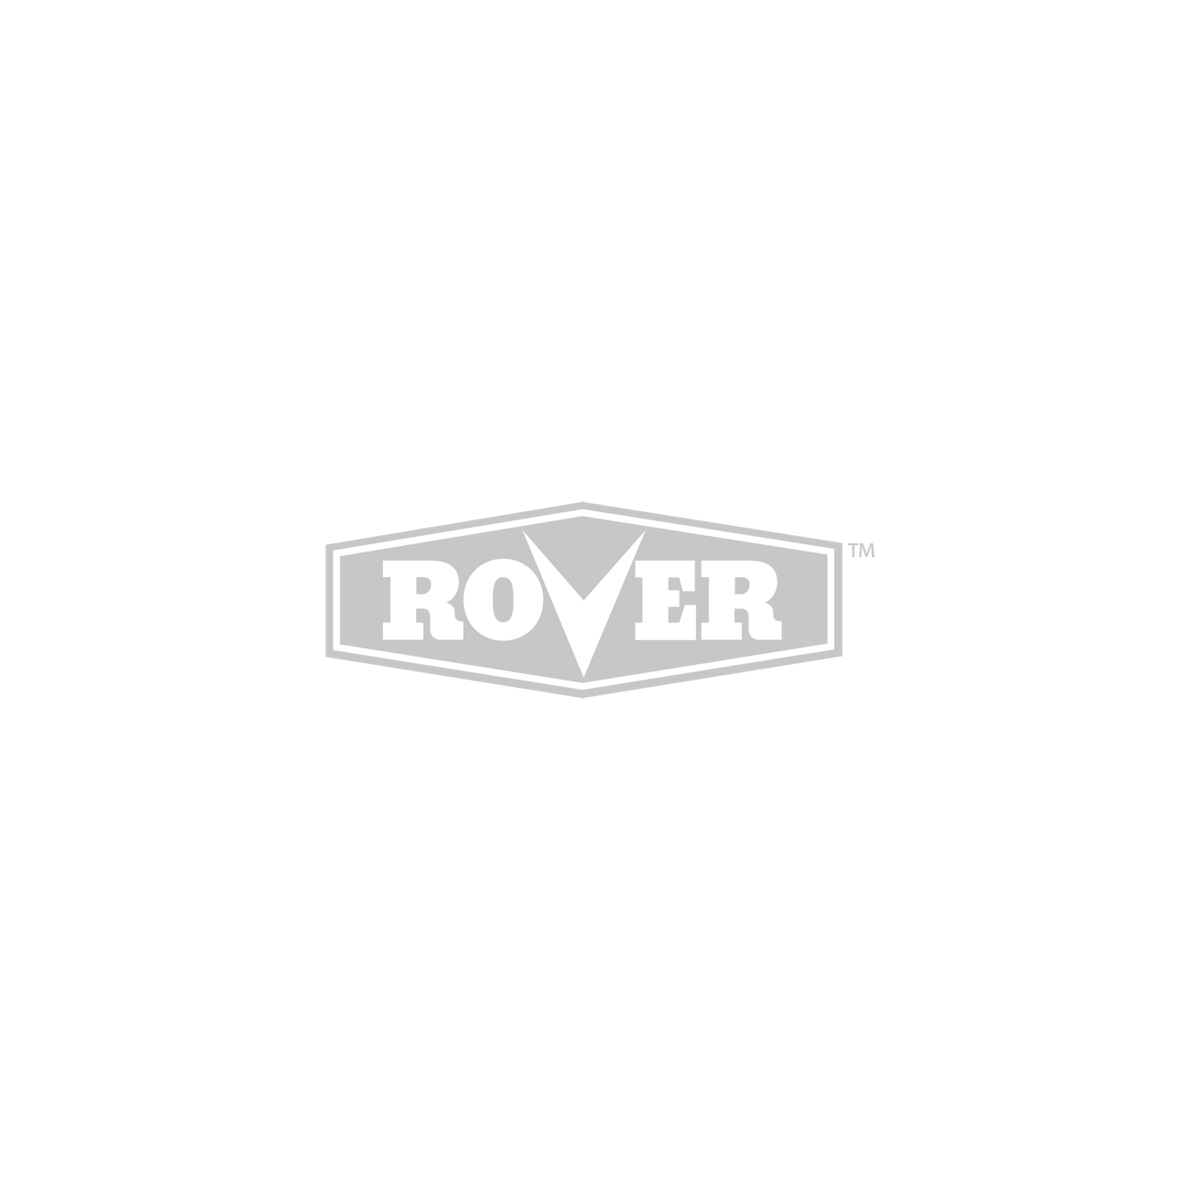 Four wheel steering with steering wheel control provides superior safety and control especially on steep terrain